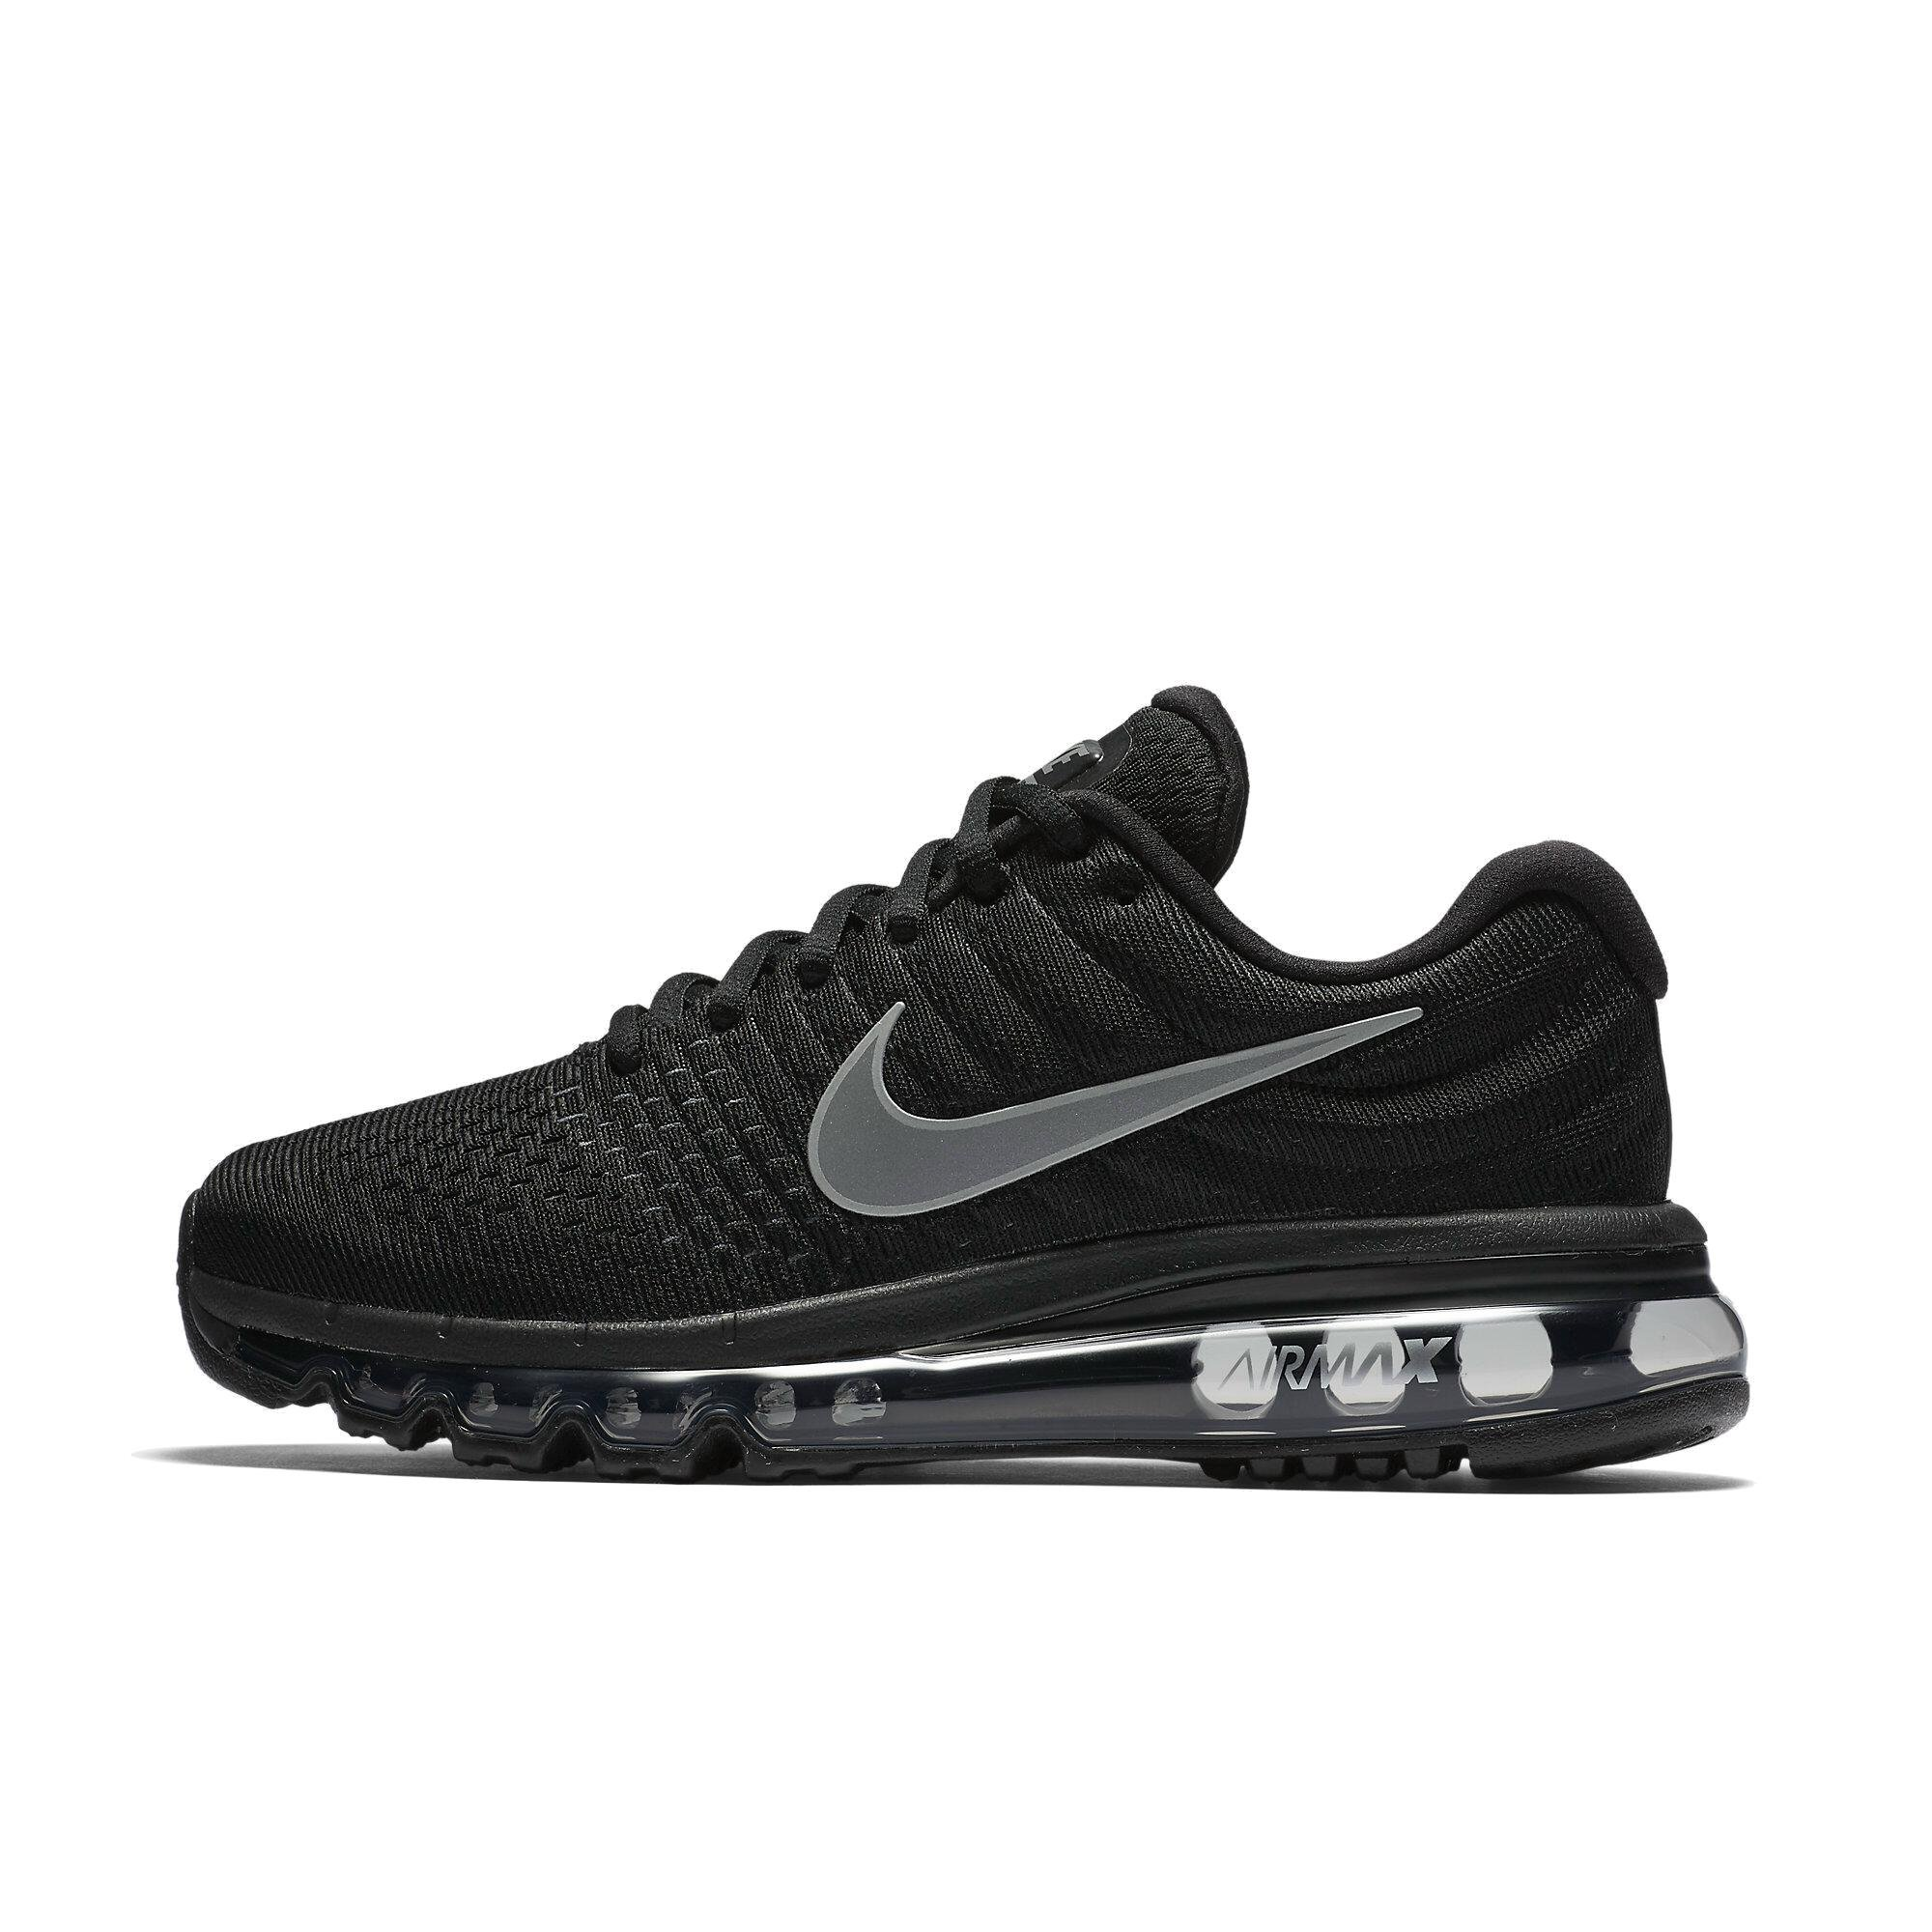 NIKE Air Max 2017 Womens Style: 849560-001 Size: 5.5 M US